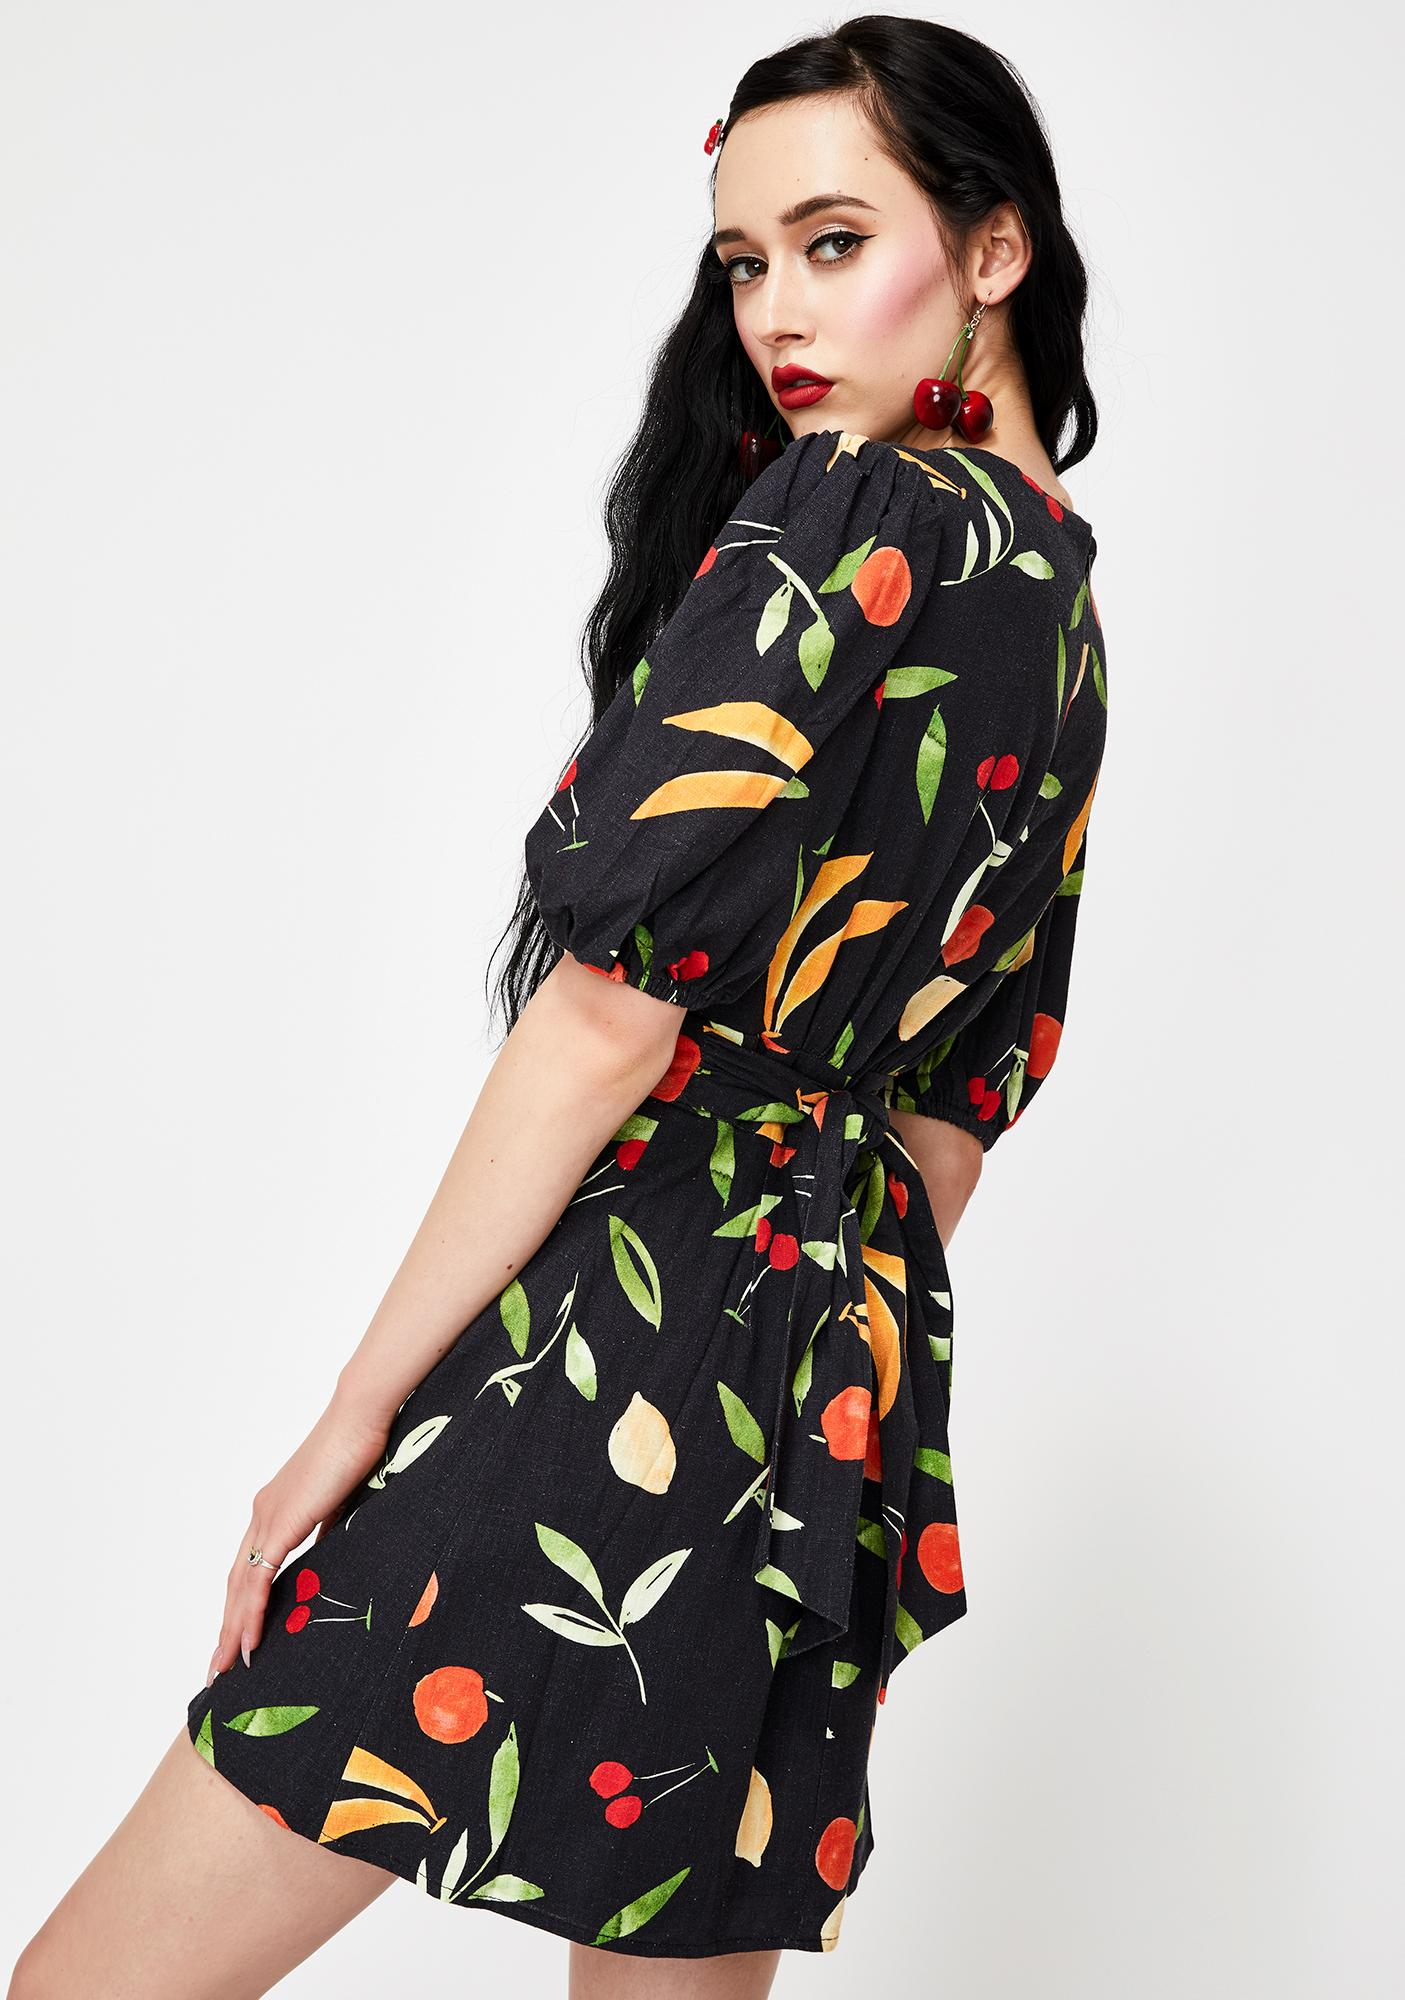 Finders Keepers Black Fruitbowl Calypso Mini Dress